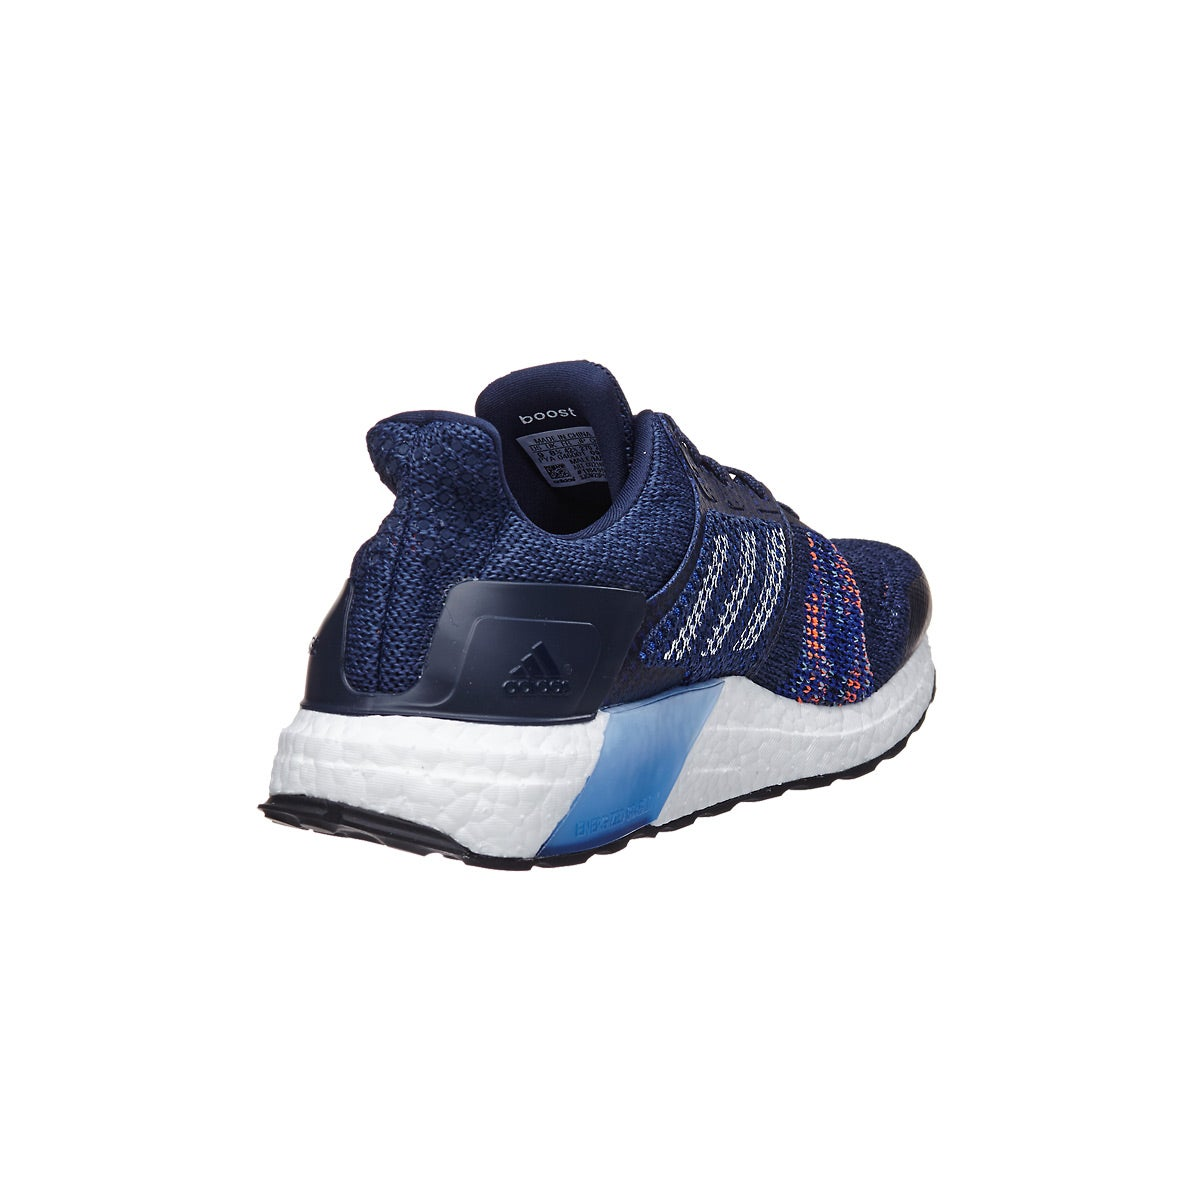 ffc3609226b adidas Ultra Boost ST Men s Shoes Noble Indigo White 360° View ...